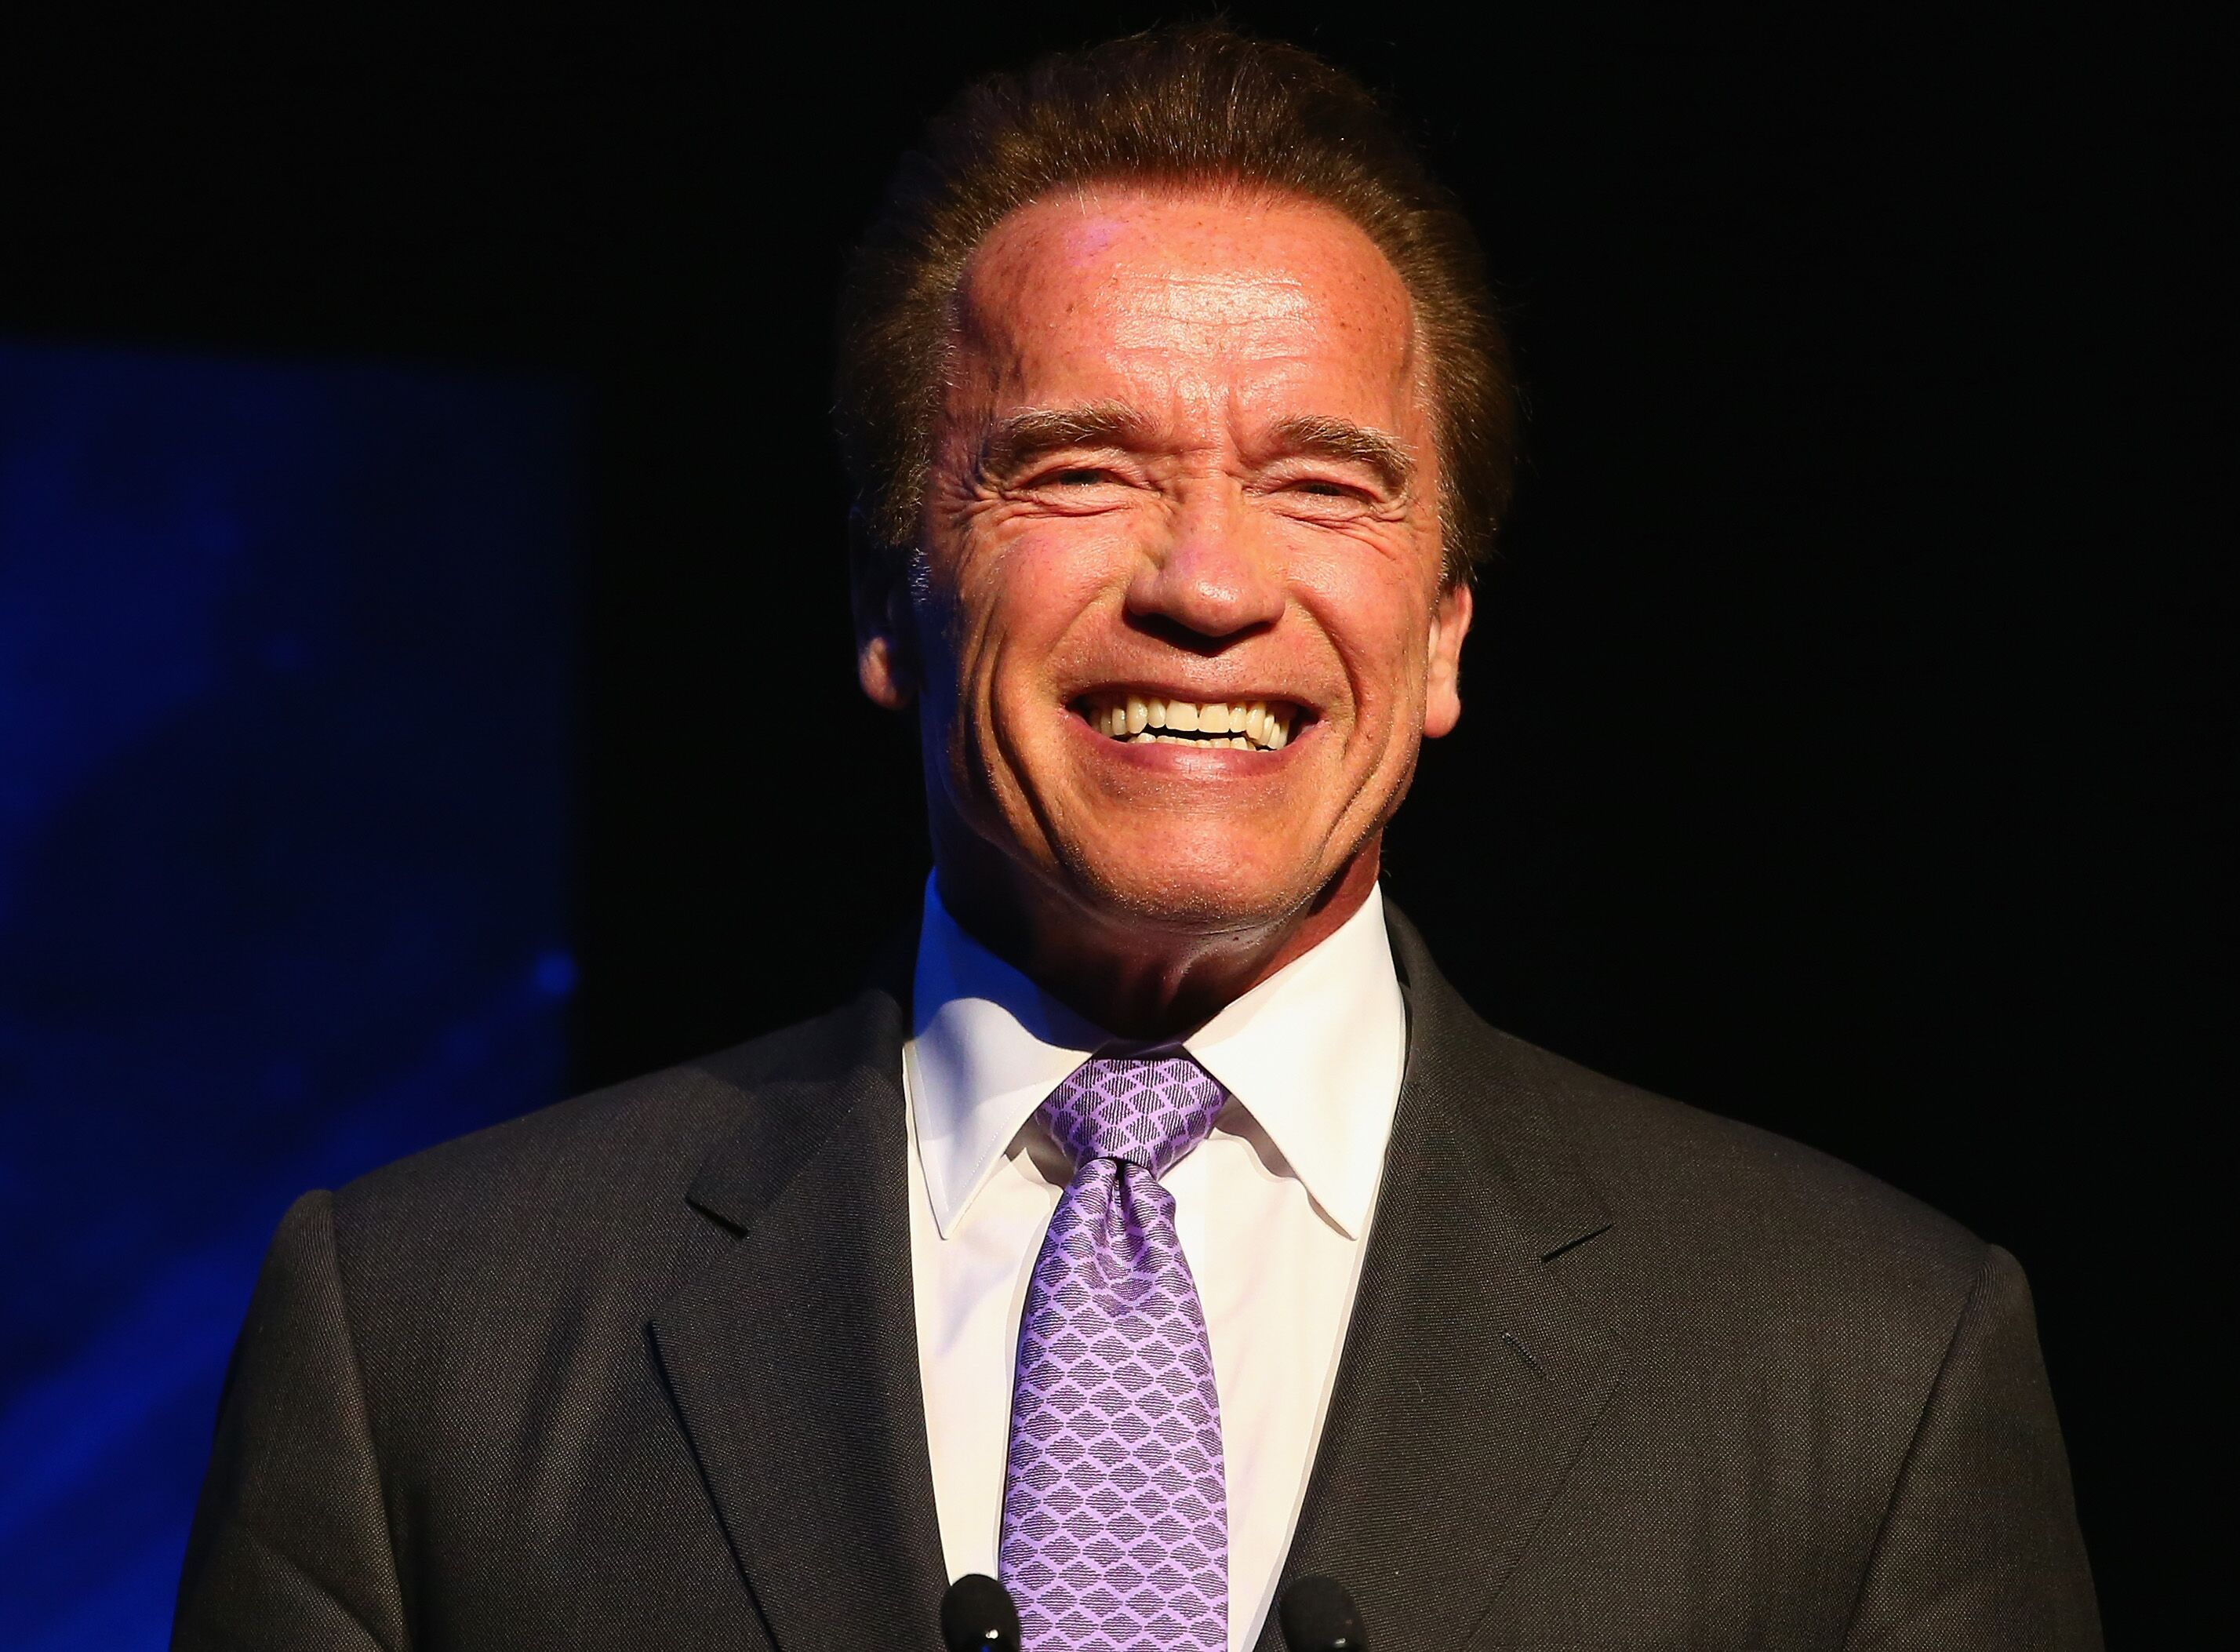 Arnold Schwarzenegger speaks on stage during the Arnold Classic Australia at The Melbourne Convention and Exhibition Centre on March 14, 2015 in Melbourne, Australia | Source: Getty Images